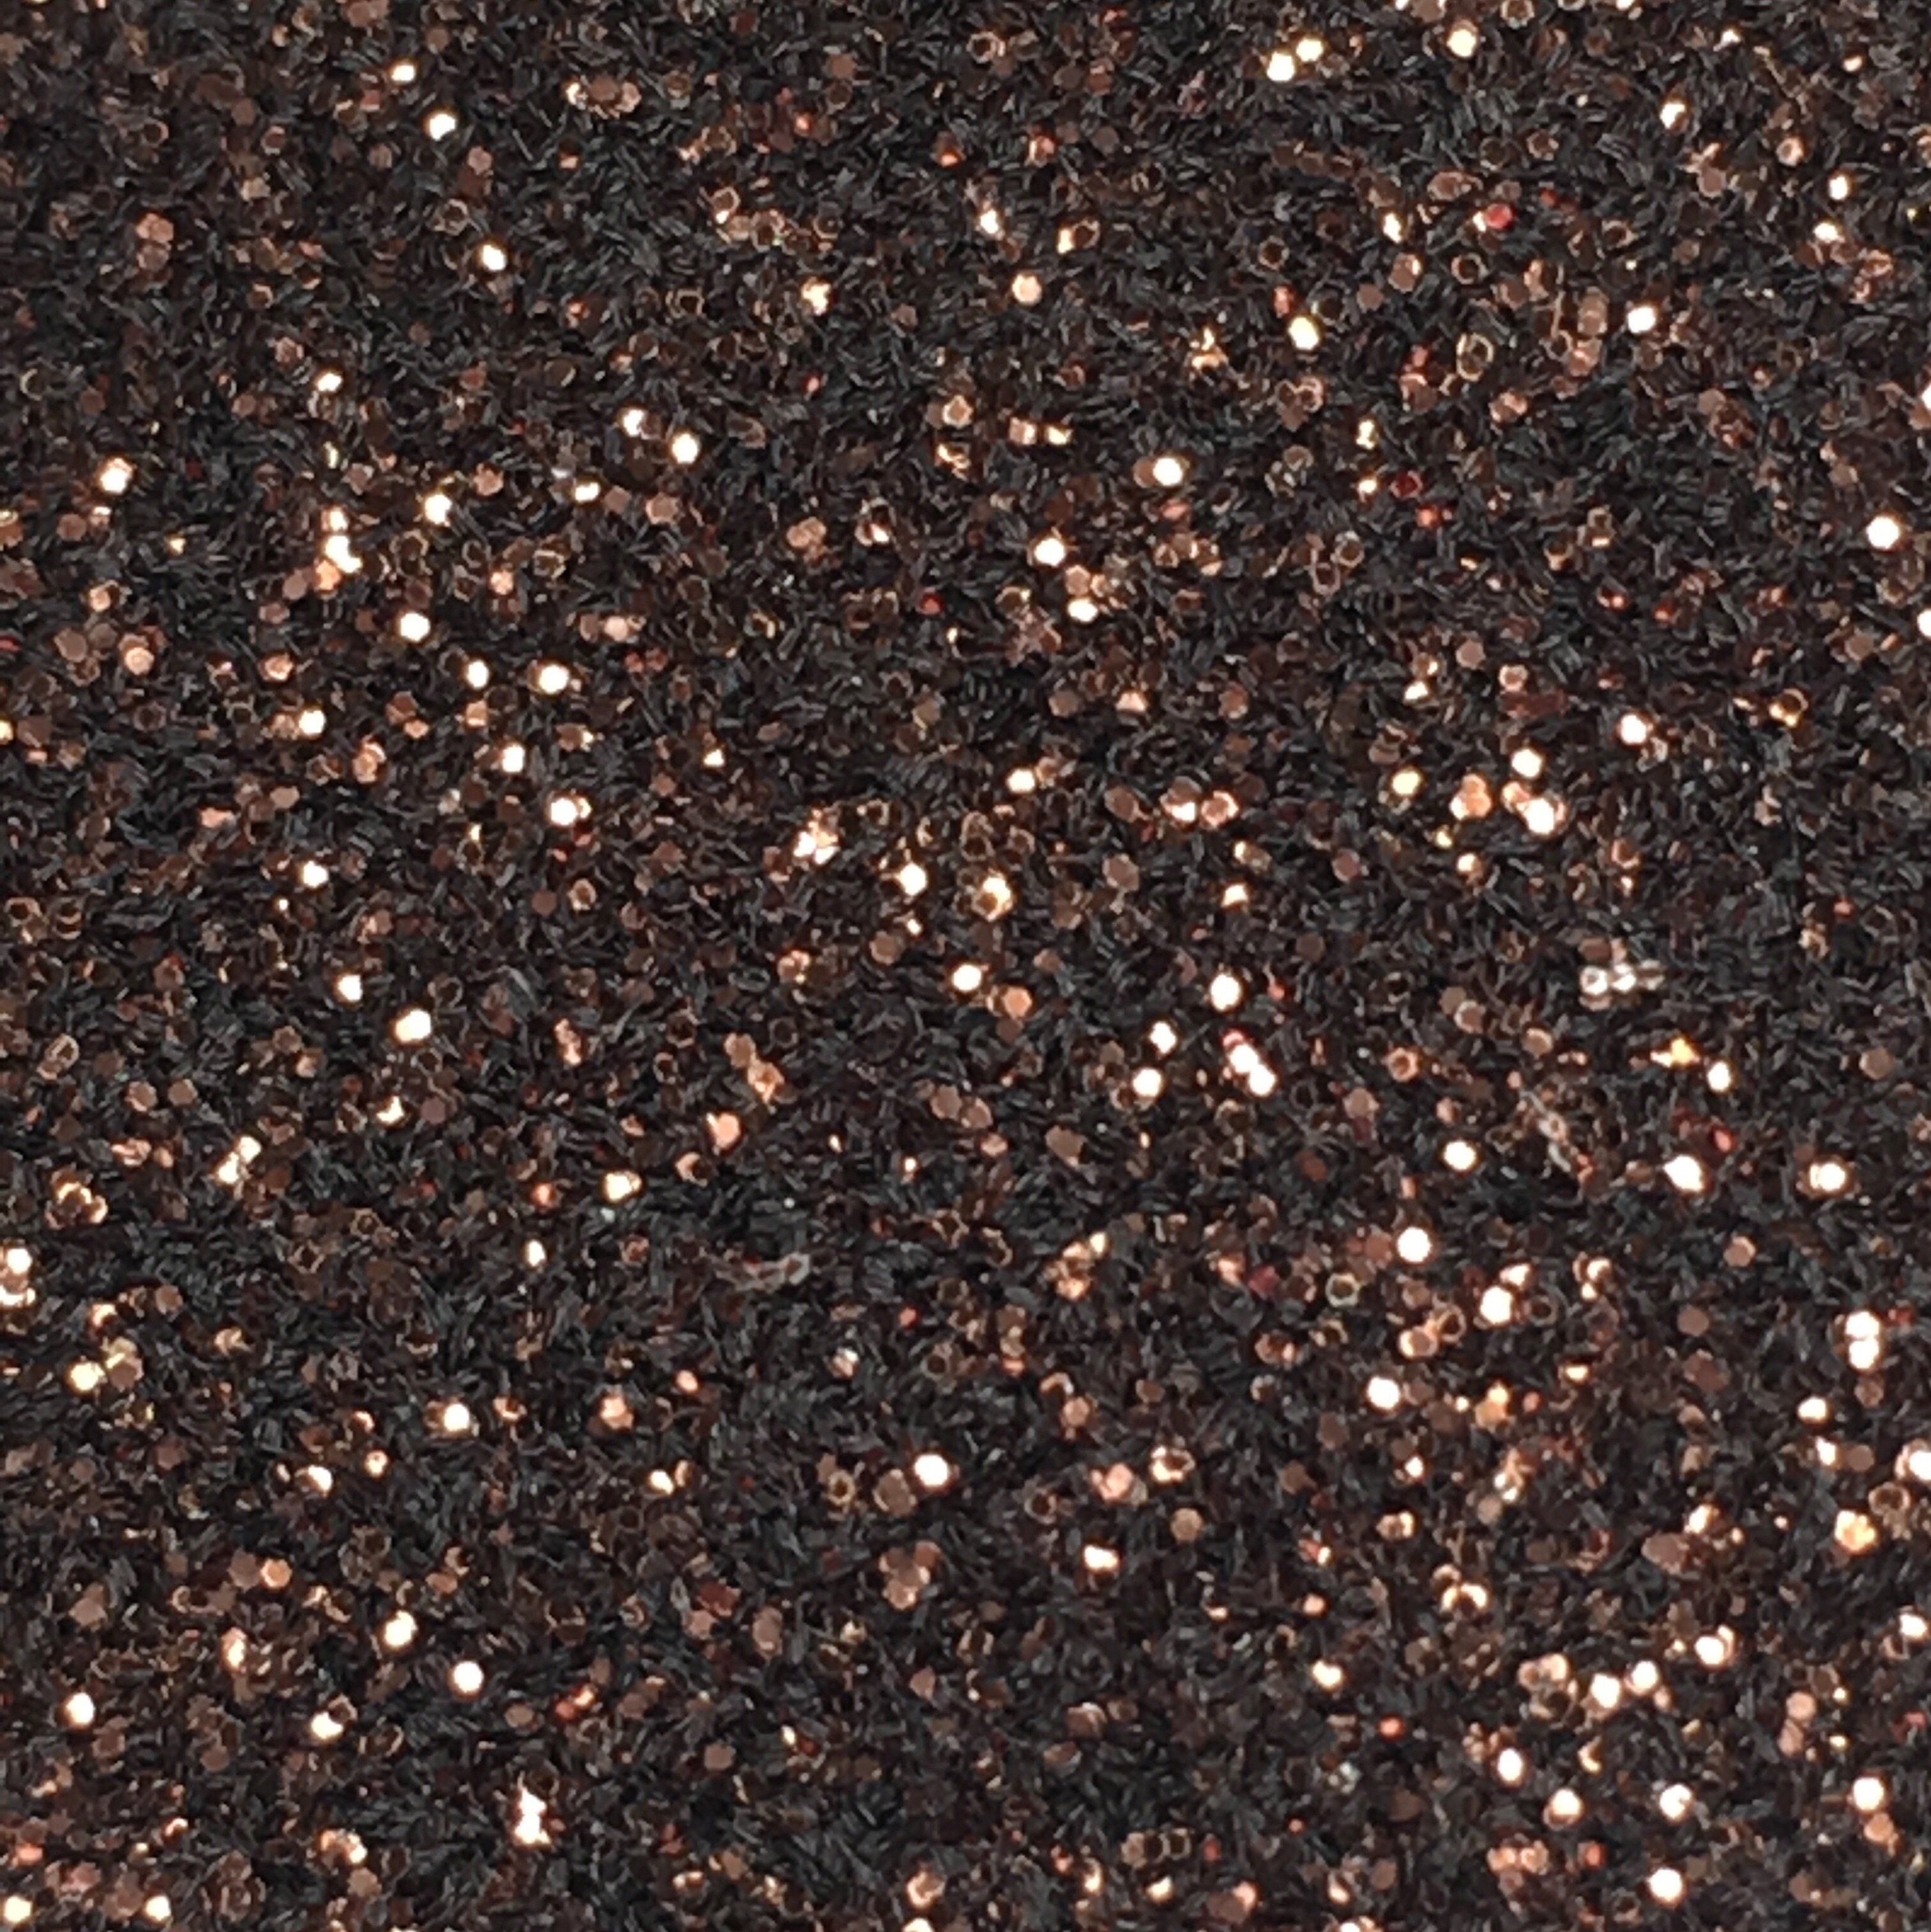 Techno Glitter In Chocolate Brown A Decorative Glitter For Your Cakes Cupcakes And Desserts Black Glitter Wallpapers Gold And Black Wallpaper Glitter Wallpaper